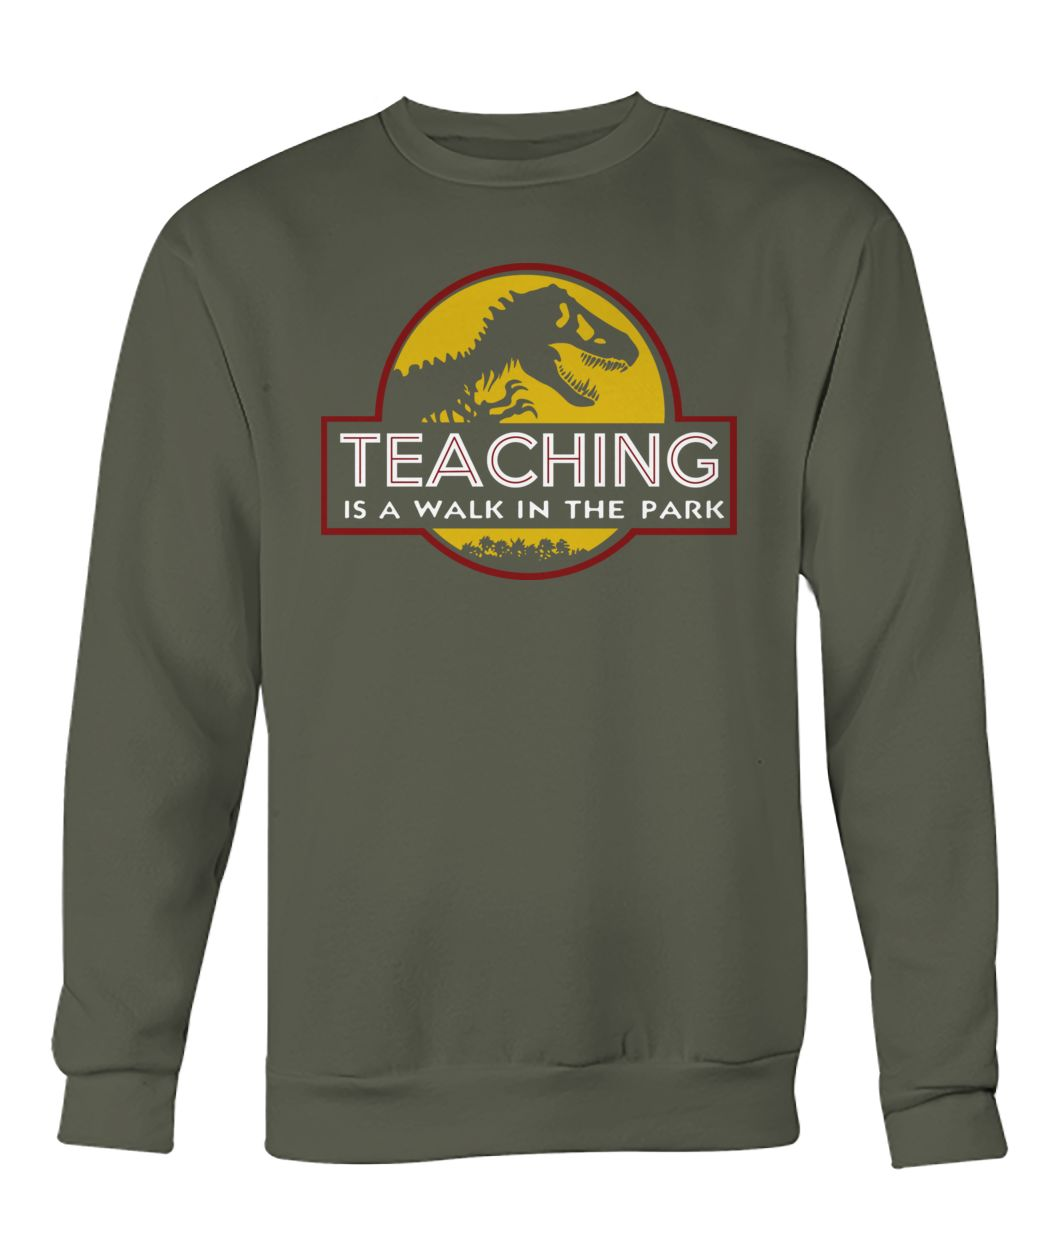 Teaching is a walk in the park Jurassic Park crew neck sweatshirt